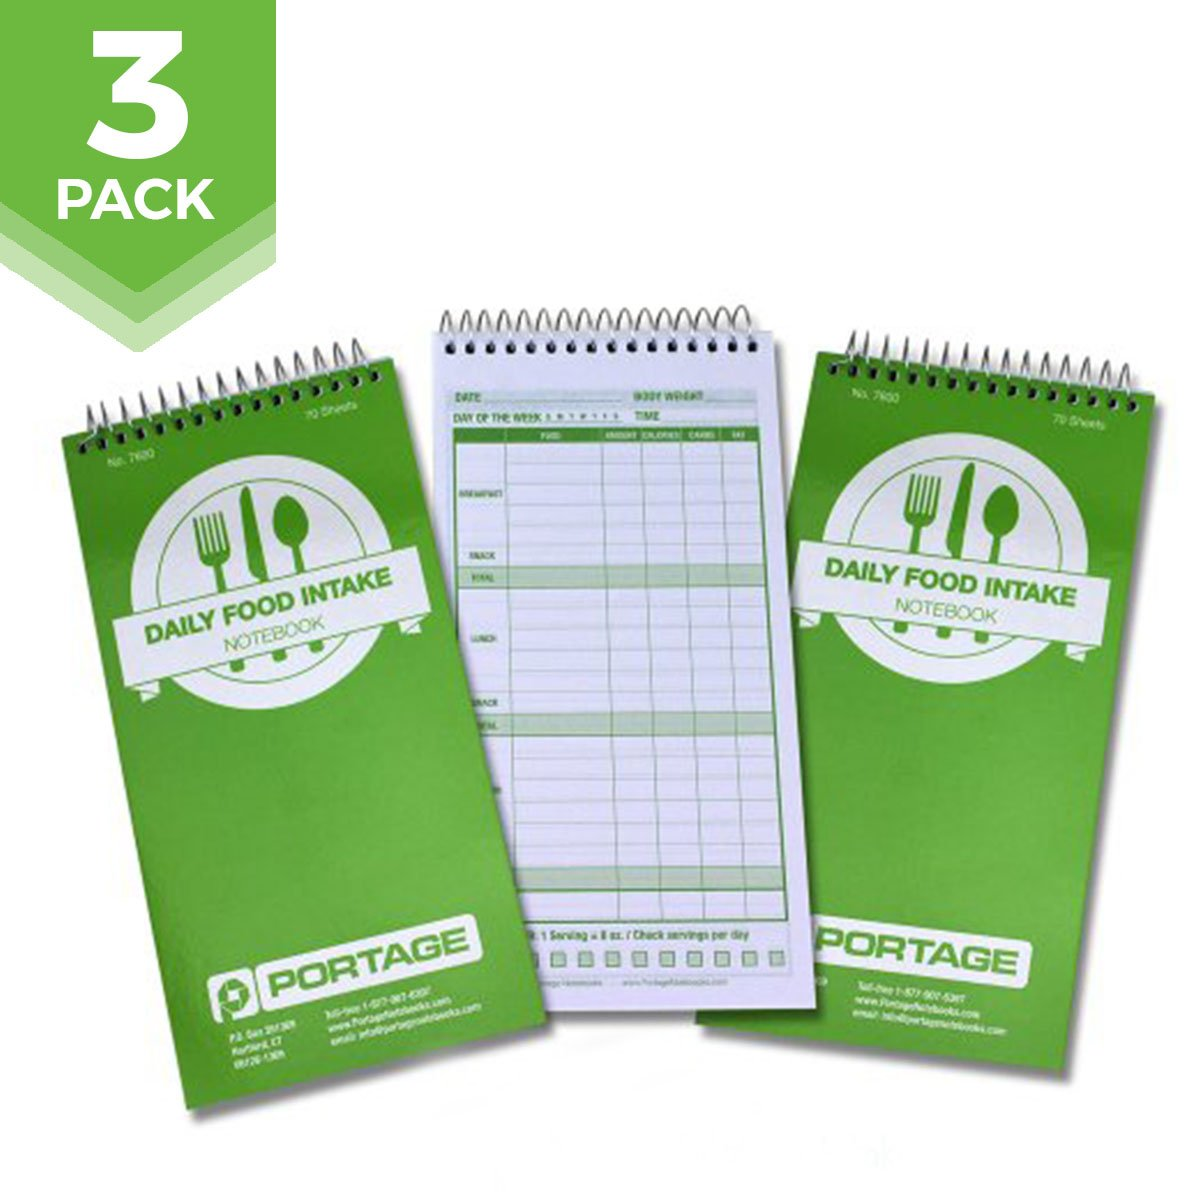 Daily Food Intake Journal Notebook - 4'' x 8'' Meal Tracker/Food Diary to Log Calories, Carbs, Fat Perfect for KETO - 140 Pages (3 Pack) by Portage